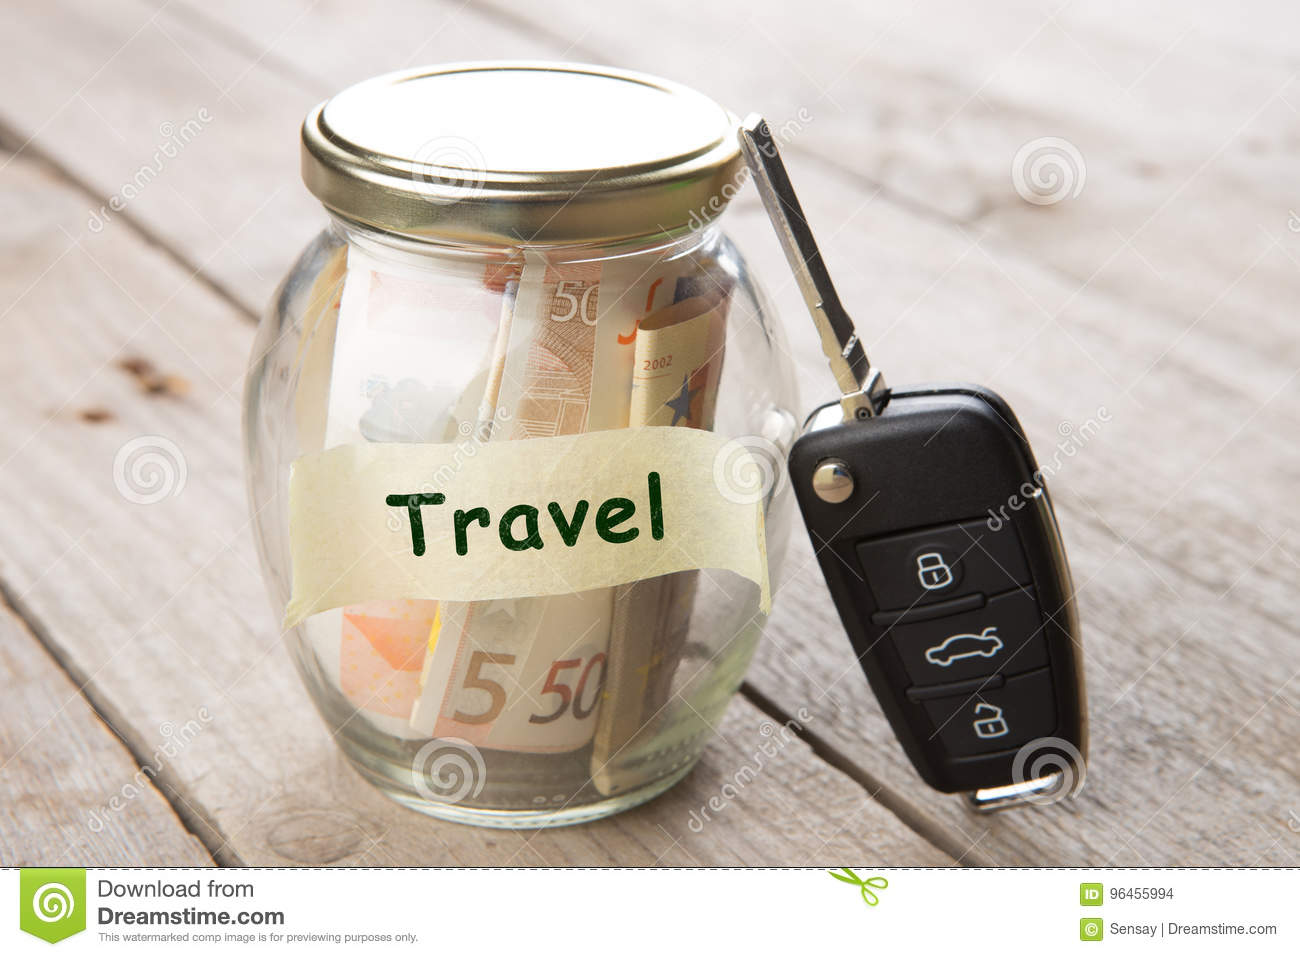 Car finance concept - money glass with word Travel, car key and roadmap